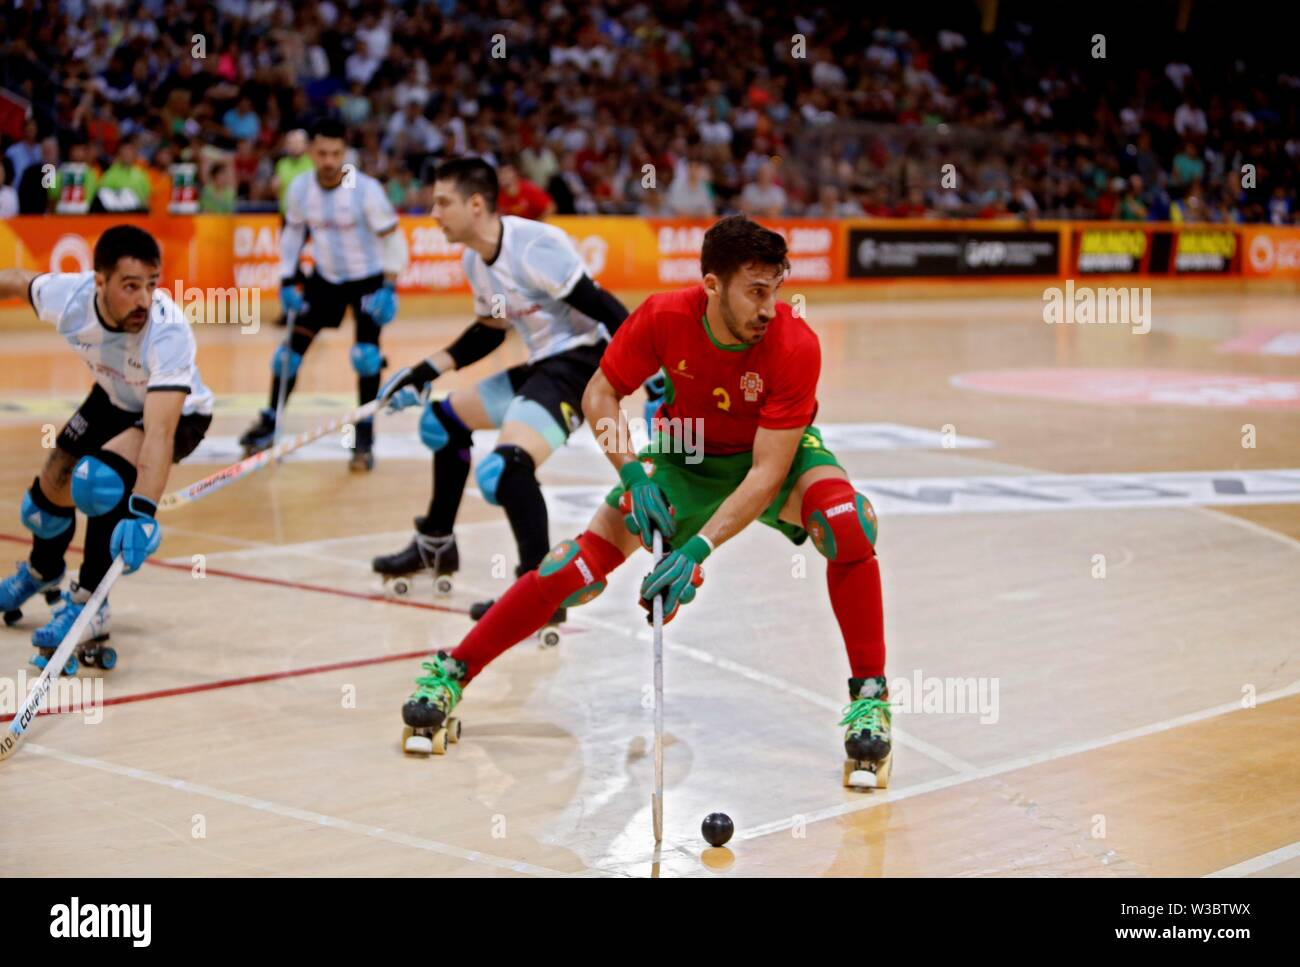 Barcelona, Spain. 14th July, 2019. Portuguese National Roller Hockey Team's player Jose Rafael Costa (C) controls the ball against Argentina during men's roller hockey third-place play-off as part of World Roller Games in Barcelona, Spain, 14 July 2019. Credit: Toni Albir/EFE/Alamy Live News - Stock Image